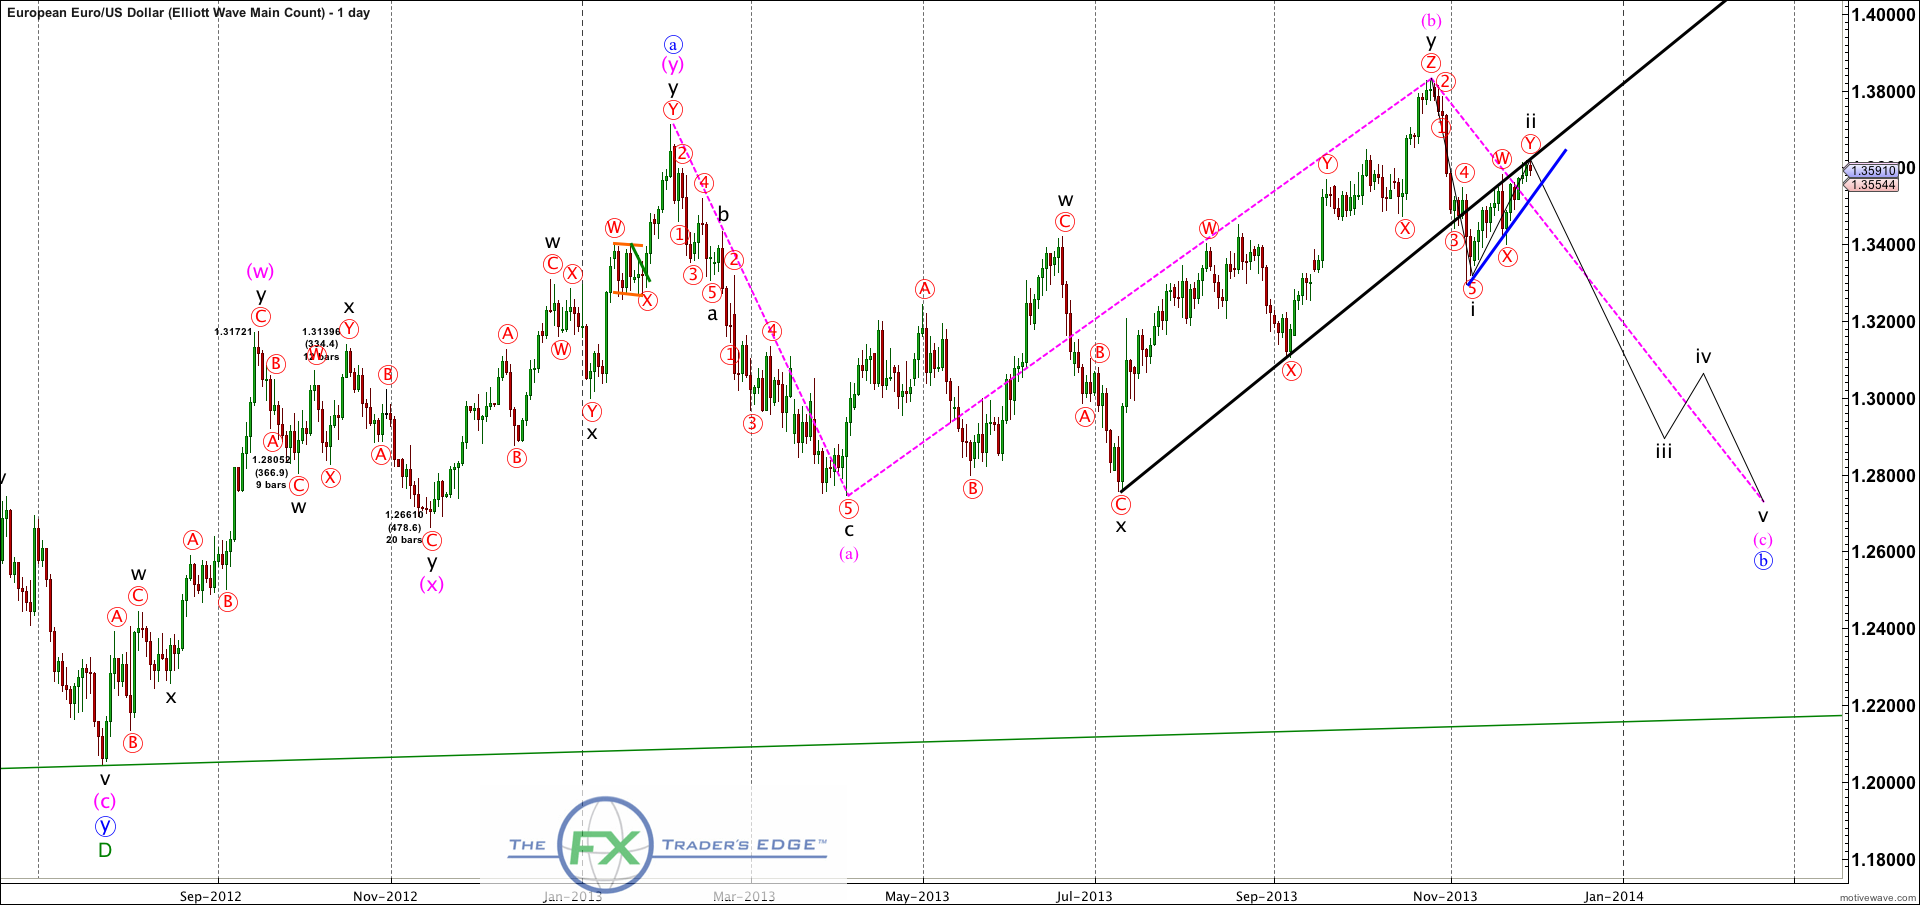 EURUSD-Elliott-Wave-Main-Count-Nov-29-2307-PM-1-day